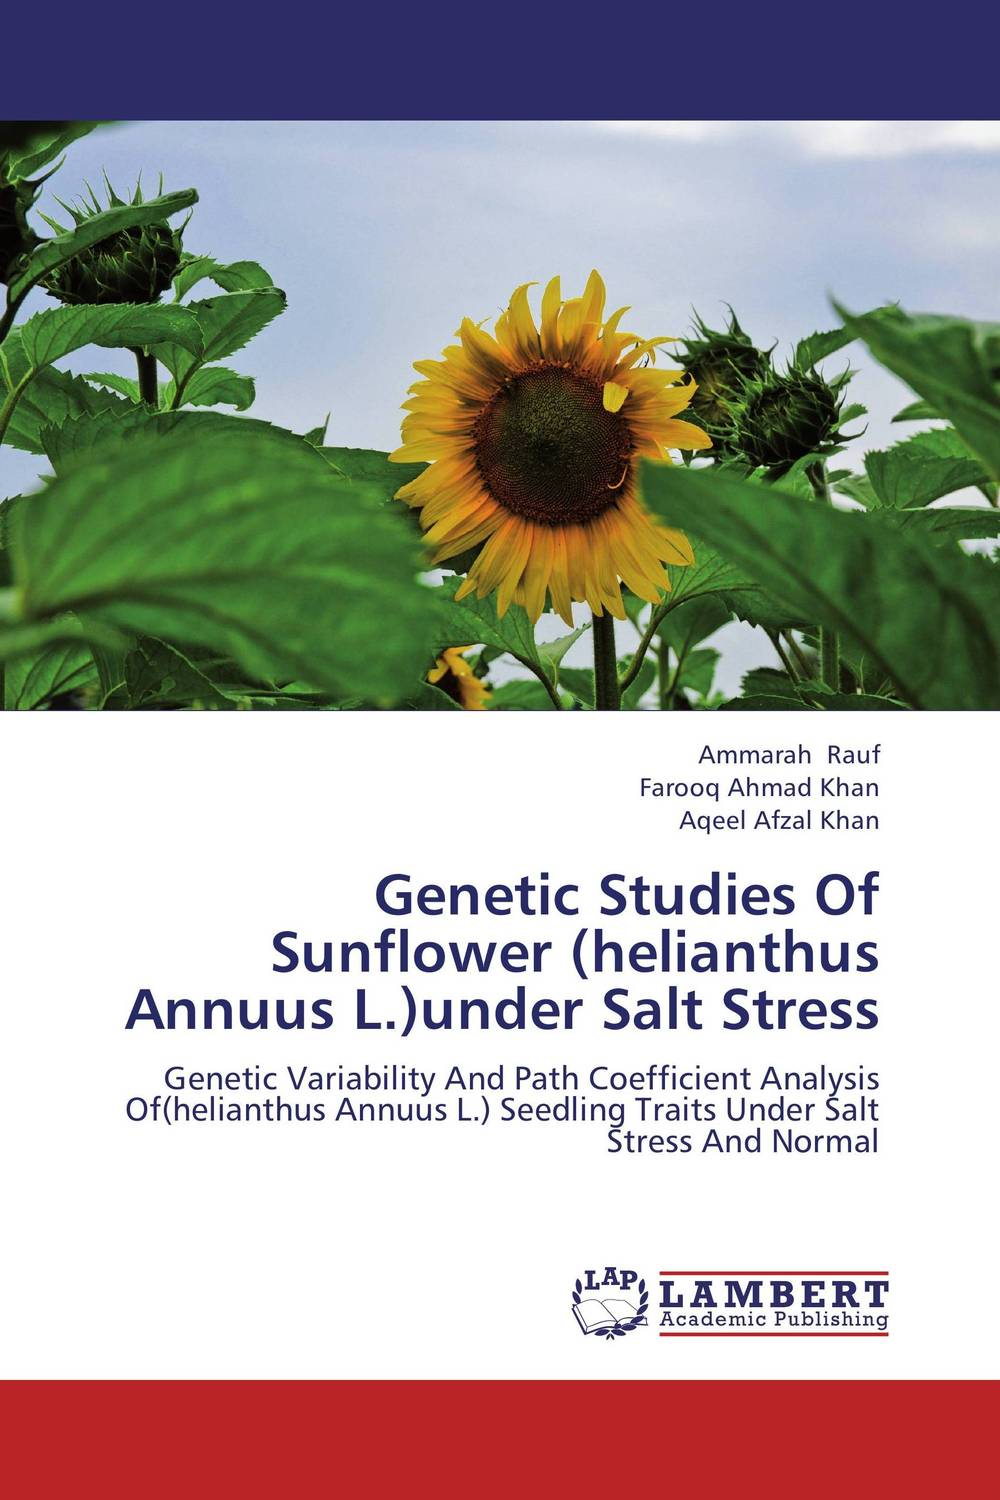 Genetic Studies Of Sunflower (helianthus Annuus L.)under Salt Stress mohd mazid and taqi ahmed khan interaction between auxin and vigna radiata l under cadmium stress